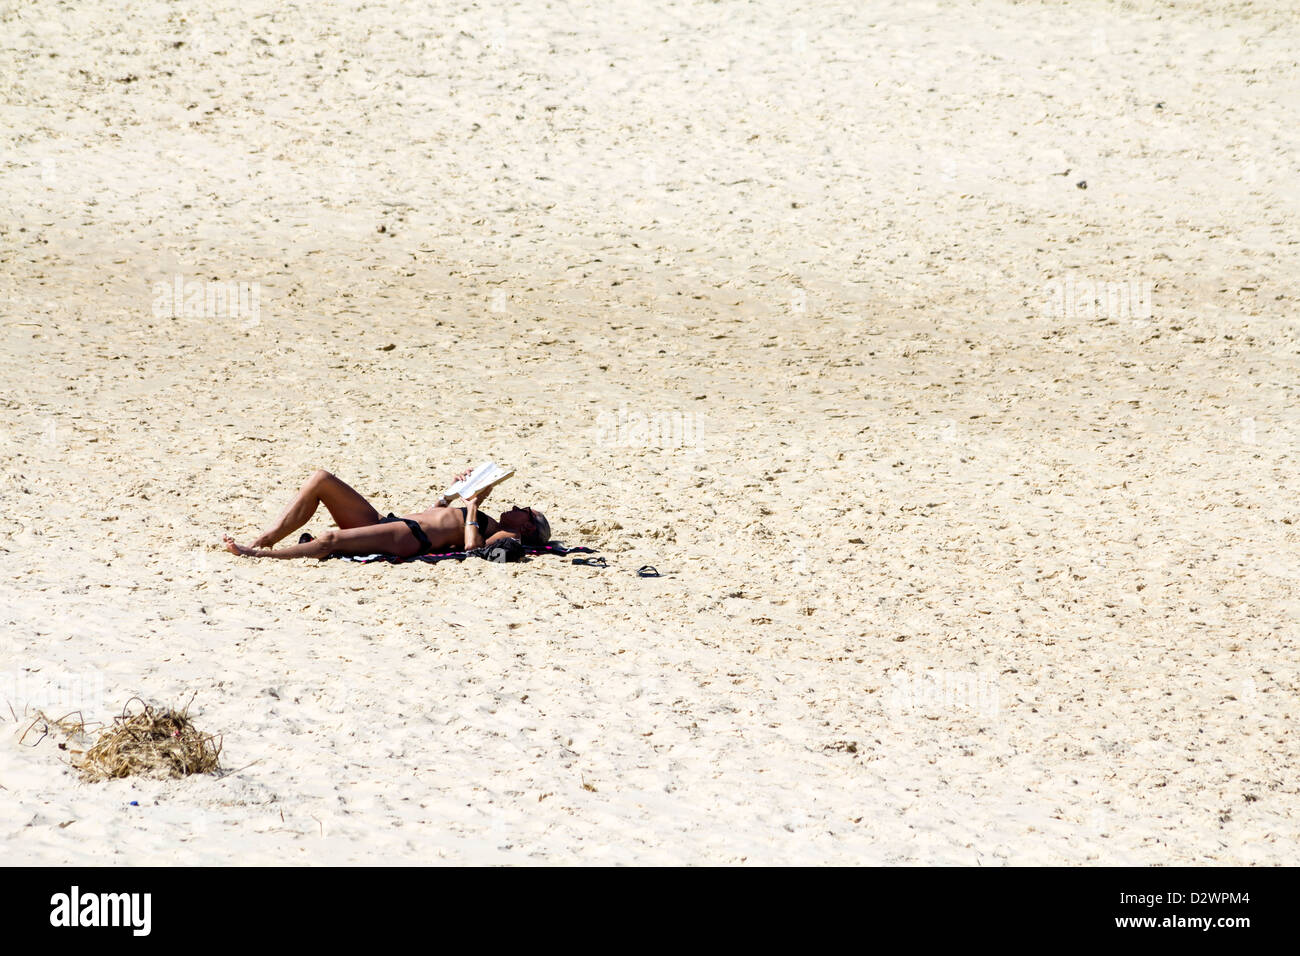 Woman sunbathing on a deserted beach in Australia - Stock Image